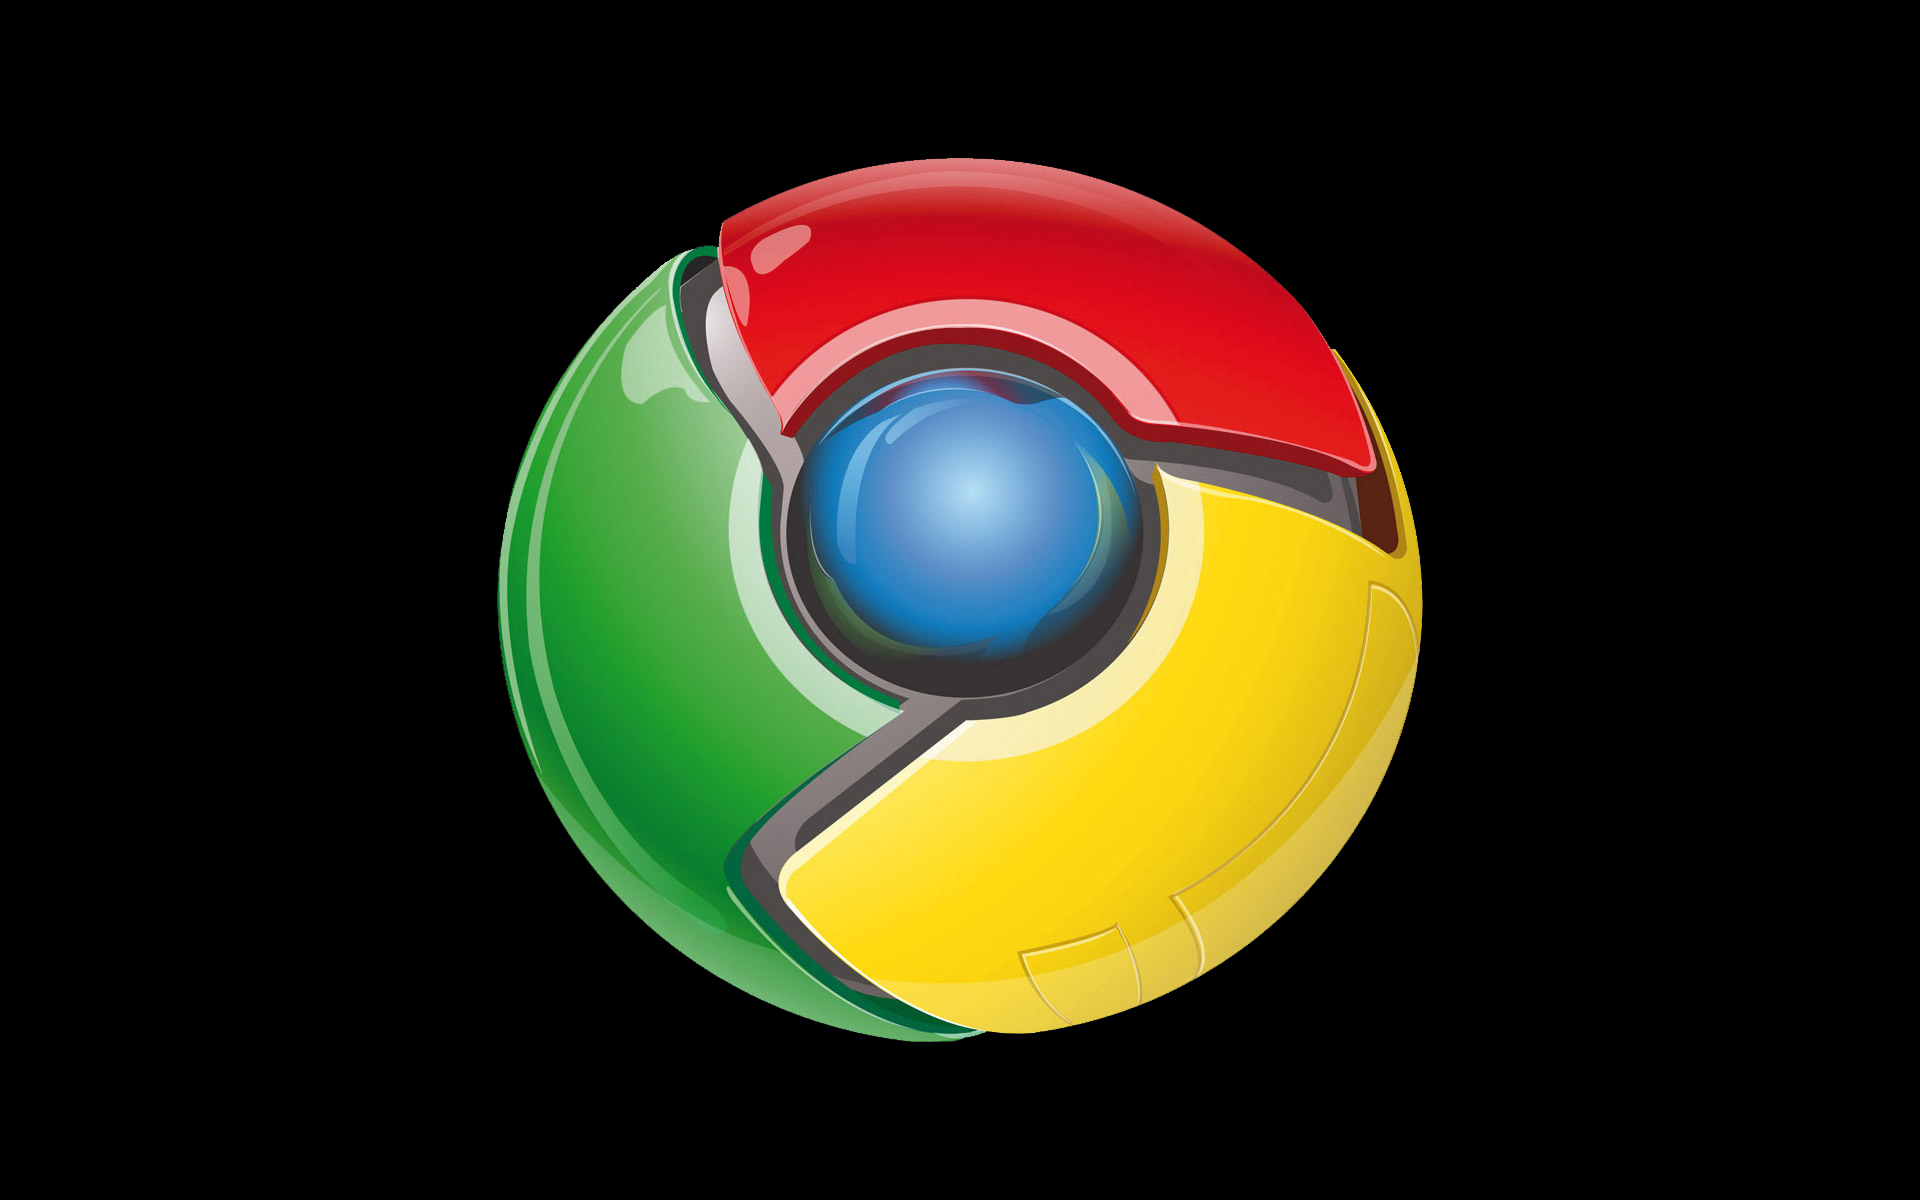 logos amazing google chrome logo hd logo download hd wallpapers